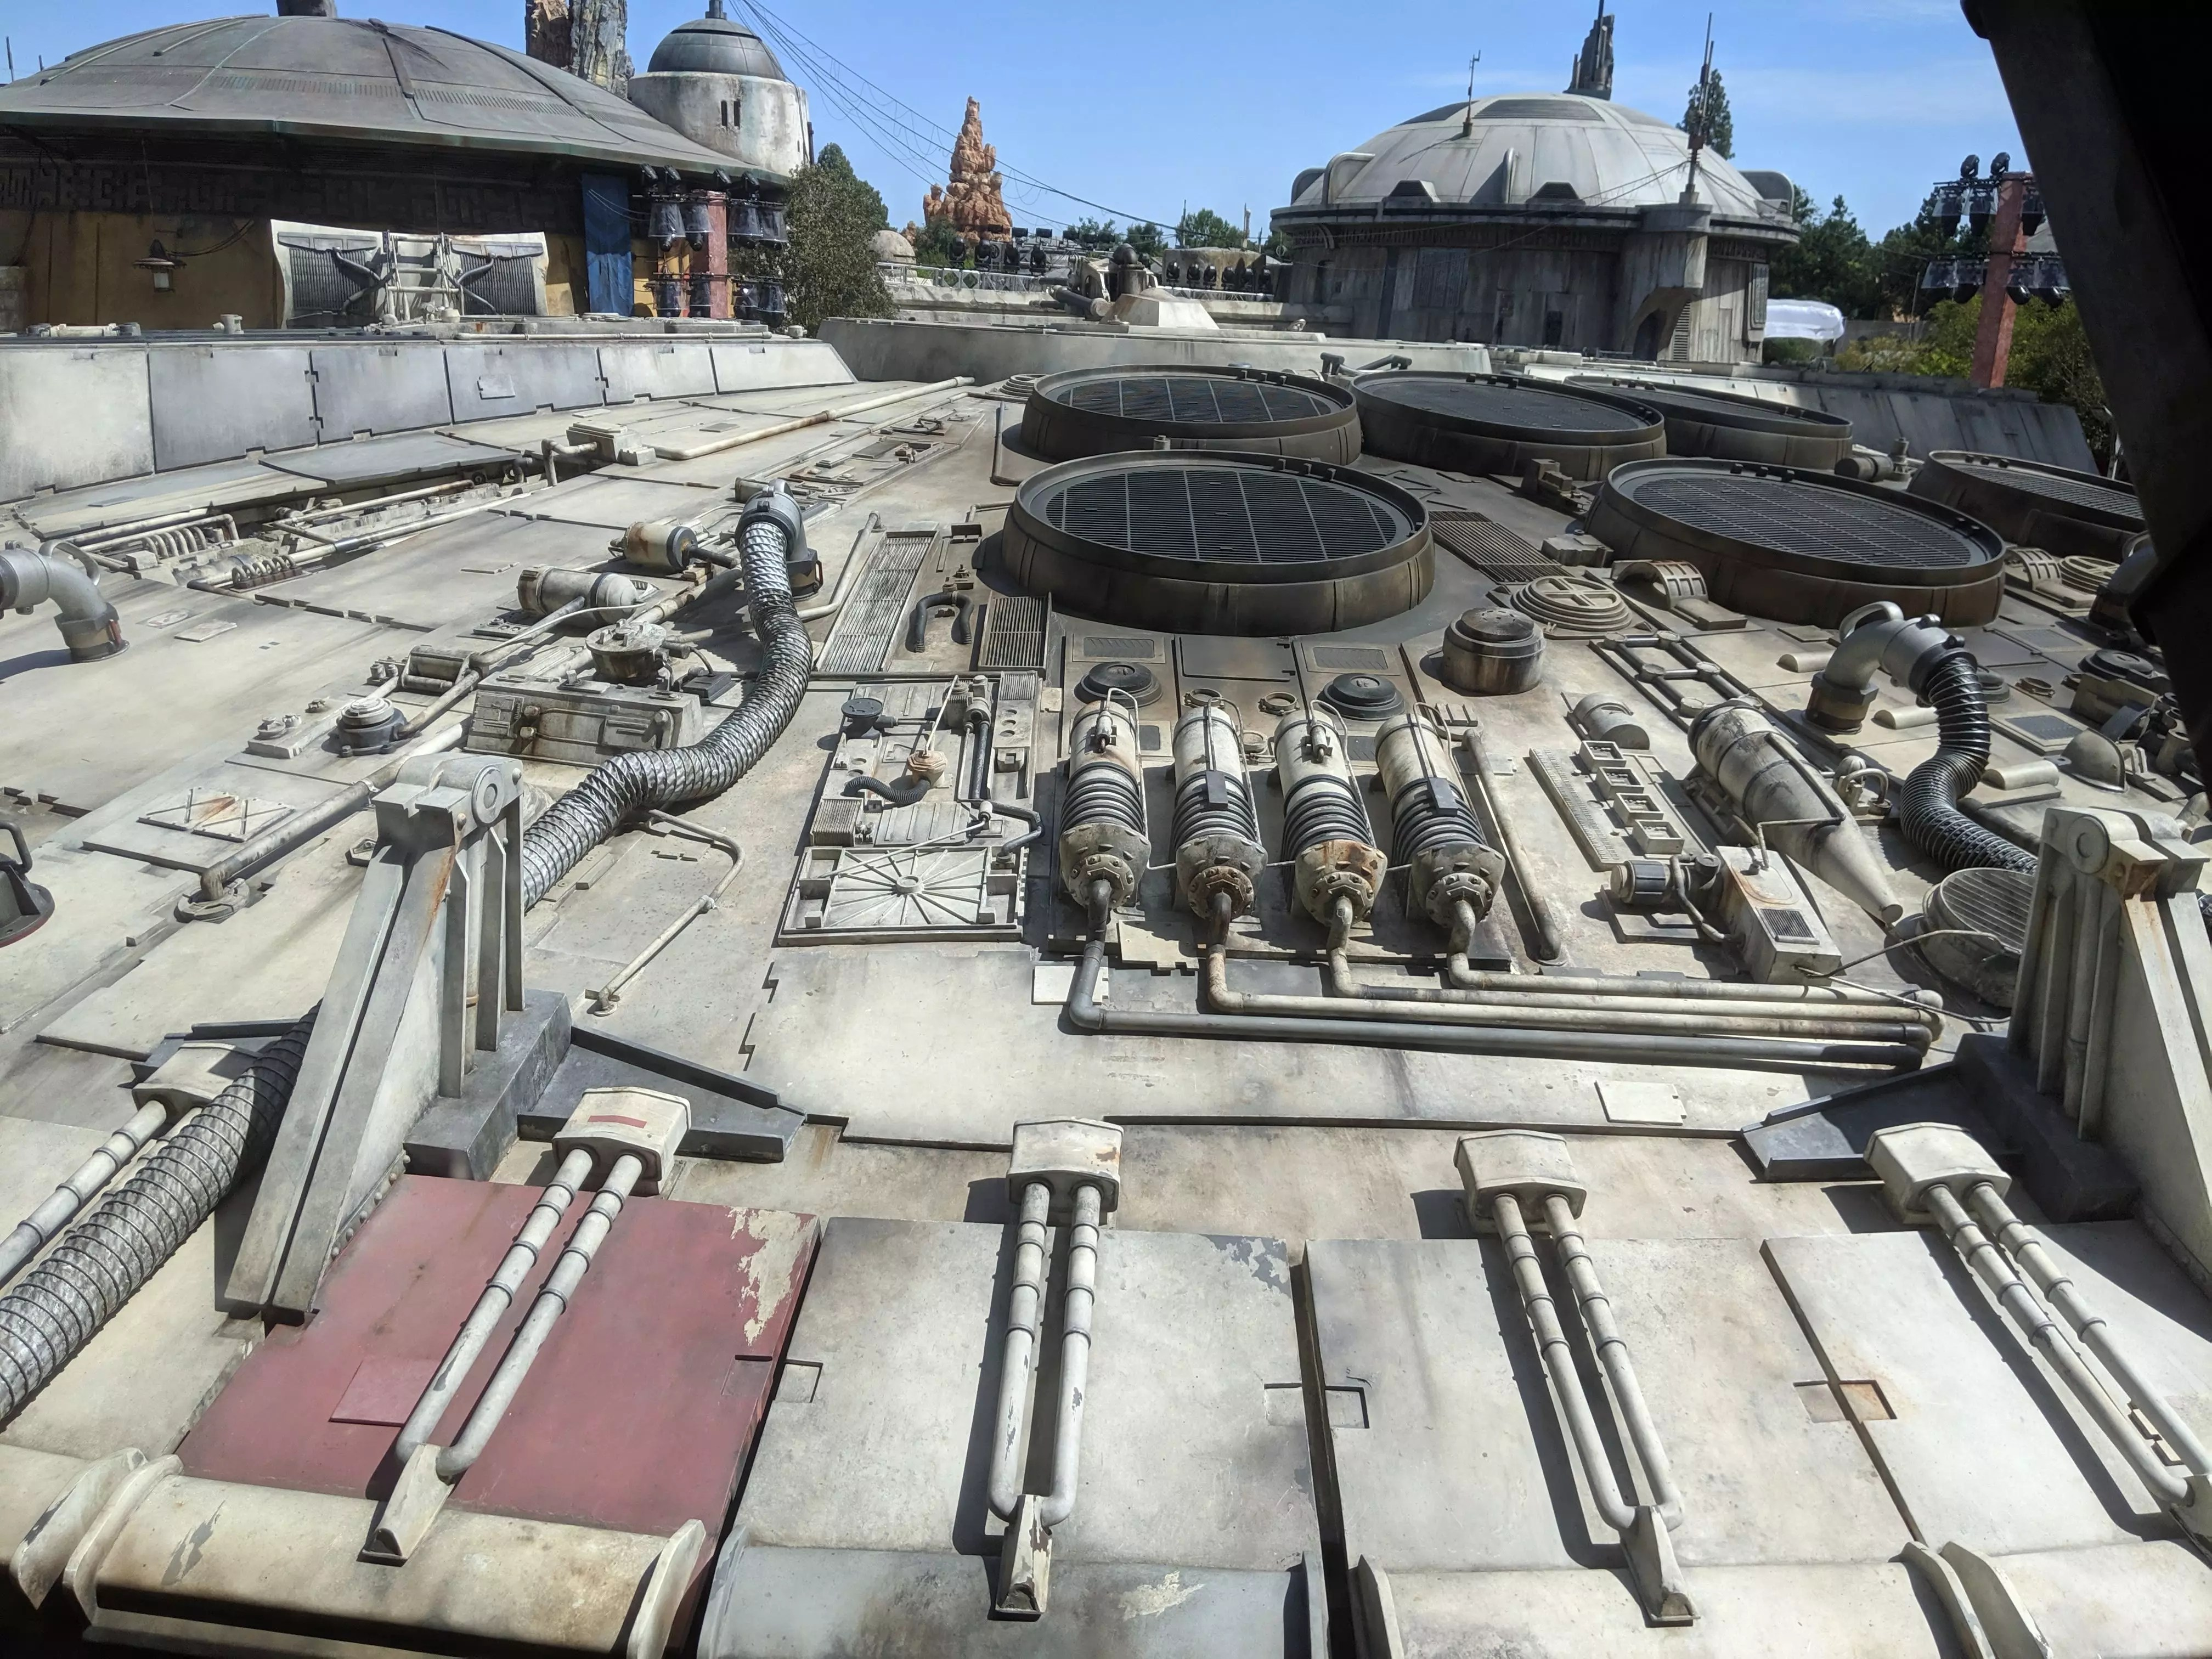 Get up close and personal with the Millennium Falcon!